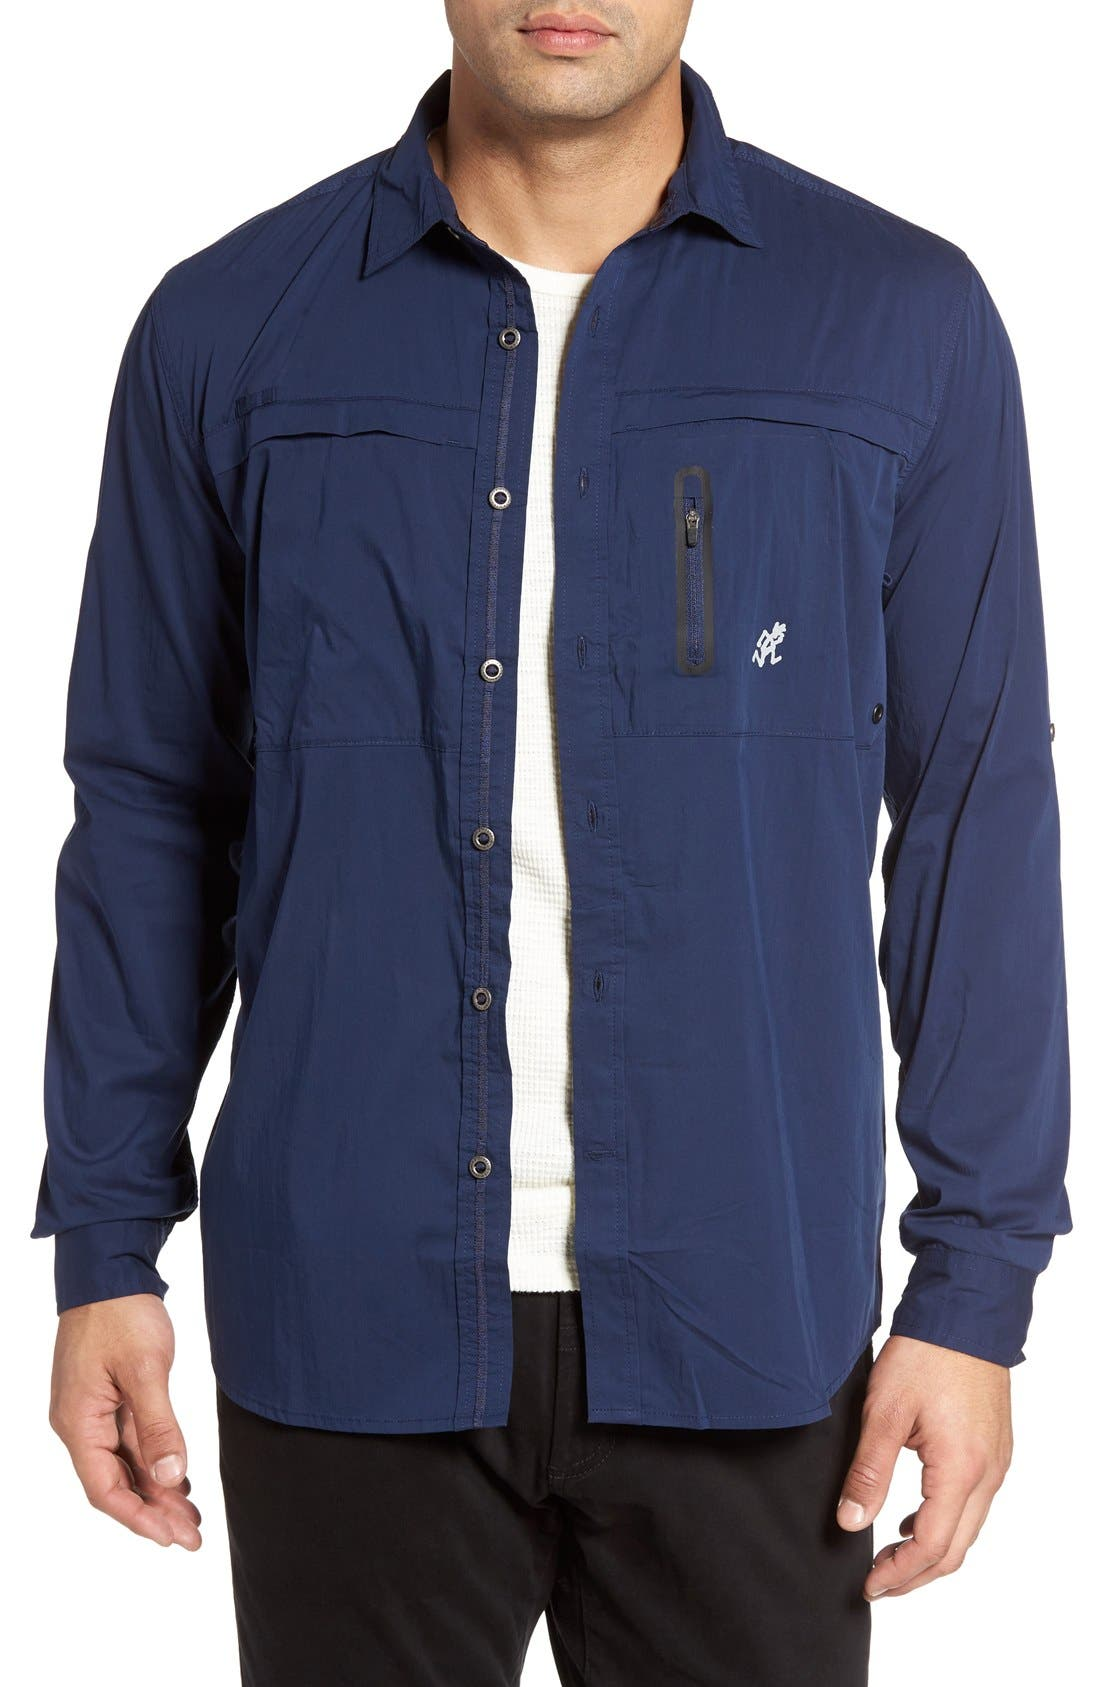 Alternate Image 1 Selected - Gramicci NO-Squito Regular Fit Travel Shirt